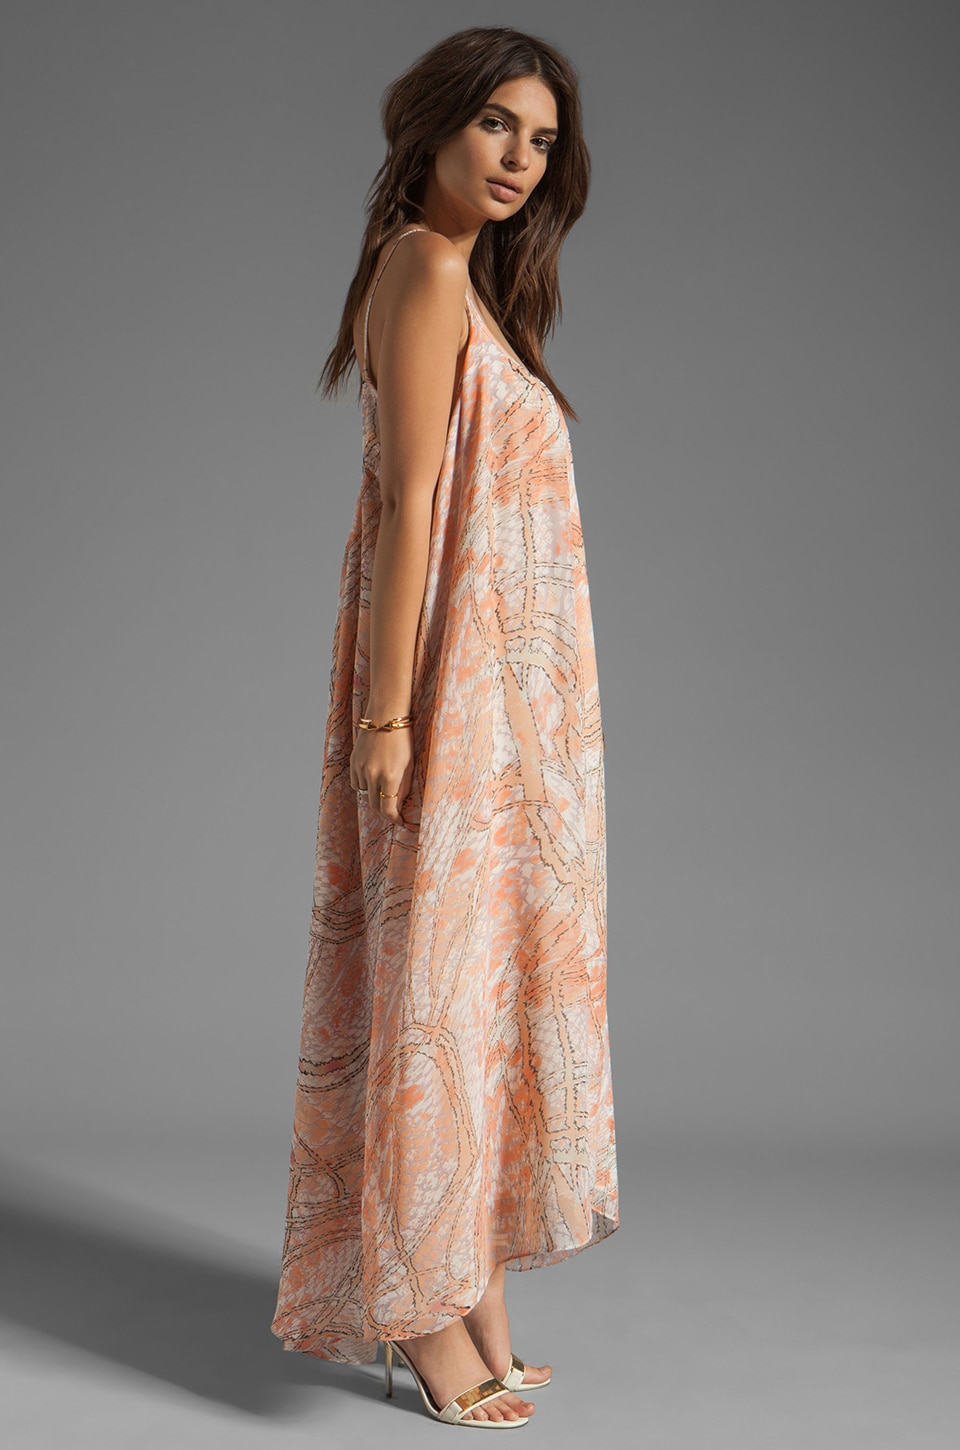 Lovers + Friends Fly Away Dress in Abstract Pastel